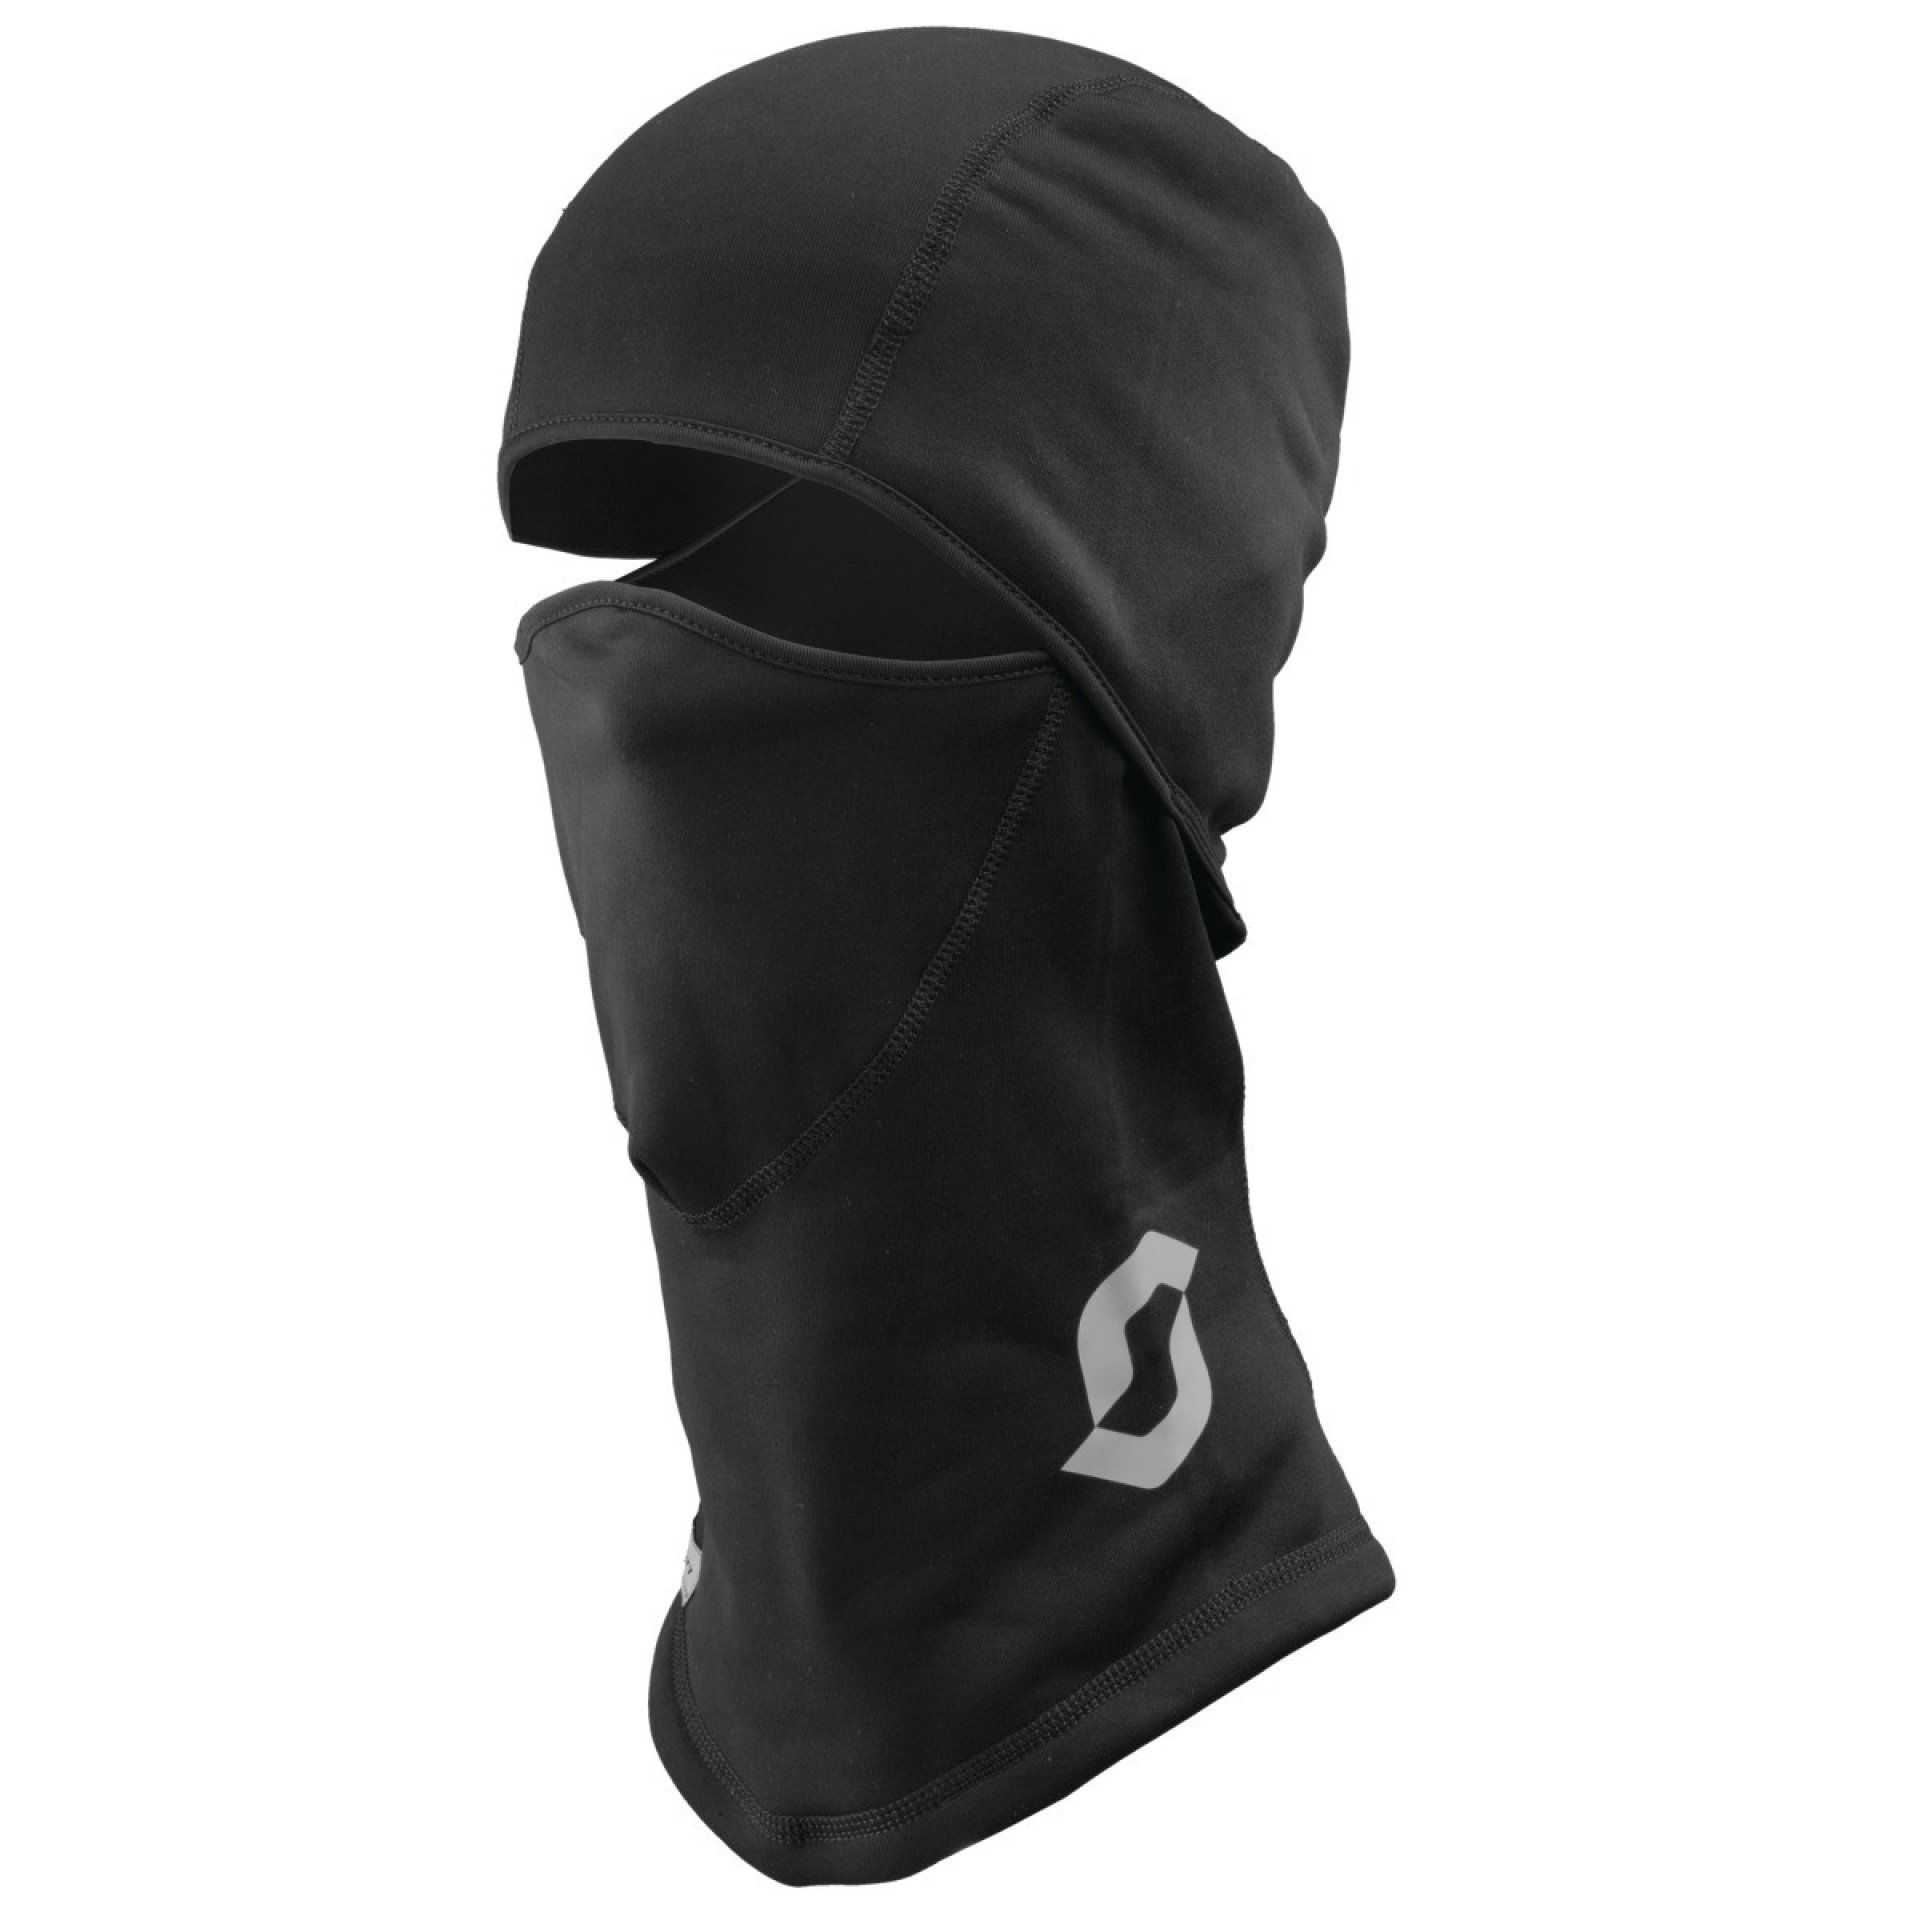 KOMINIARKA SCOTT TECHNICAL HINGED BALACLAVA BLACK